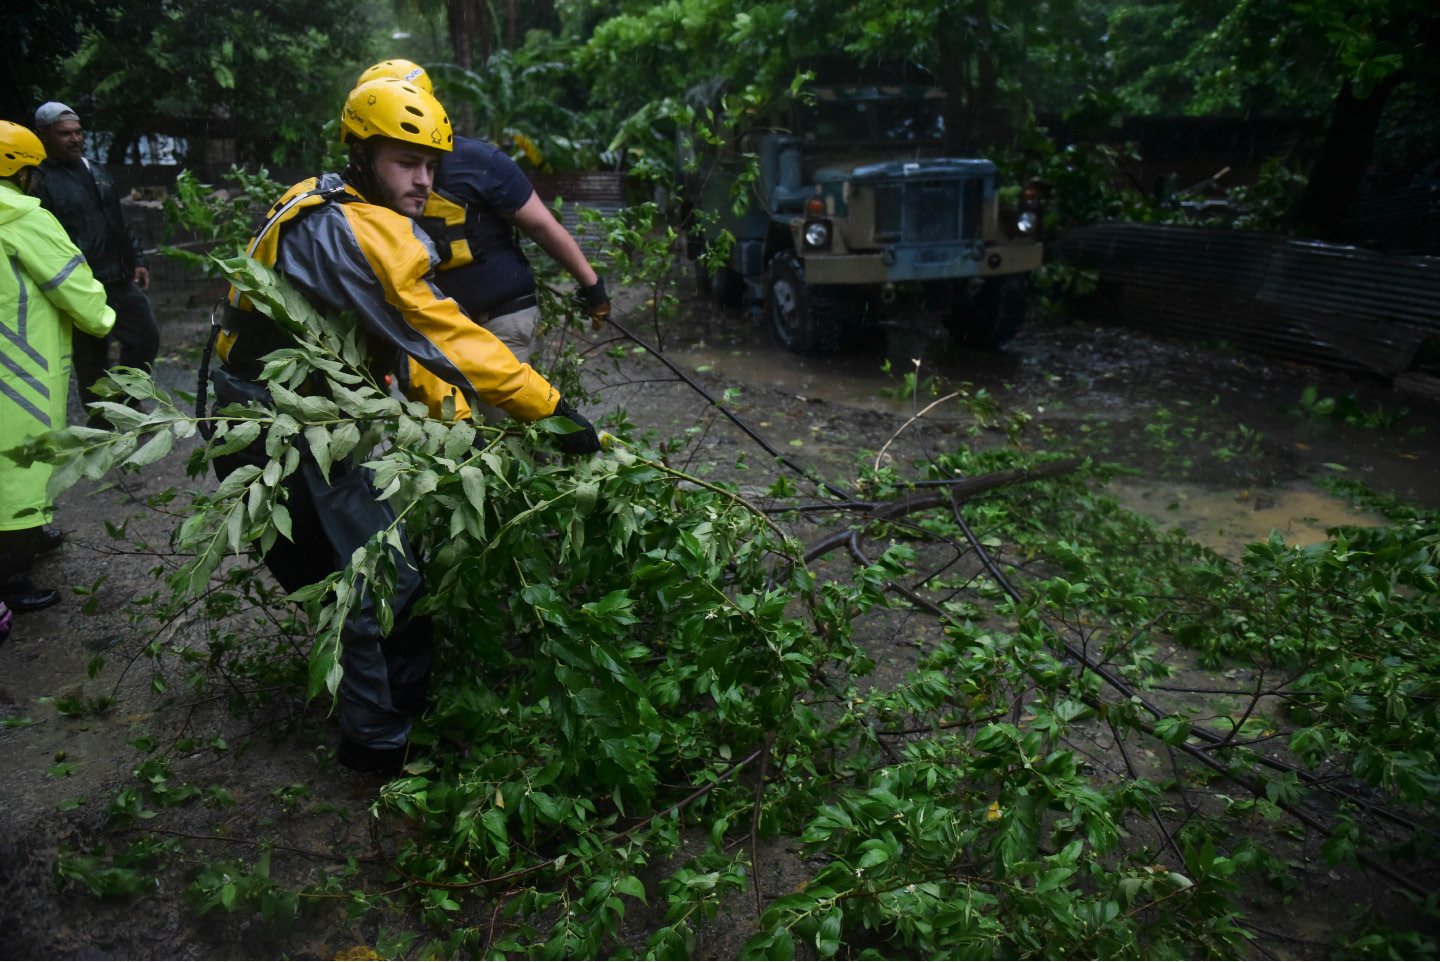 Joshua Alicea, rescue staff member from the Municipal Emergency Management Agency removes a fallen tree while touring the streets of the Matelnillo community searching for citizens in distress during the passage of Hurricane Irma through the northeastern part of the island in Fajardo, Puerto Rico, Wednesday, Sept. 6, 2017. The US territory was first to declare a state of emergency las Monday, as the National Hurricane Center forecast that the storm would strike the Island Wednesday. (AP Photo/Carlos Giusti)